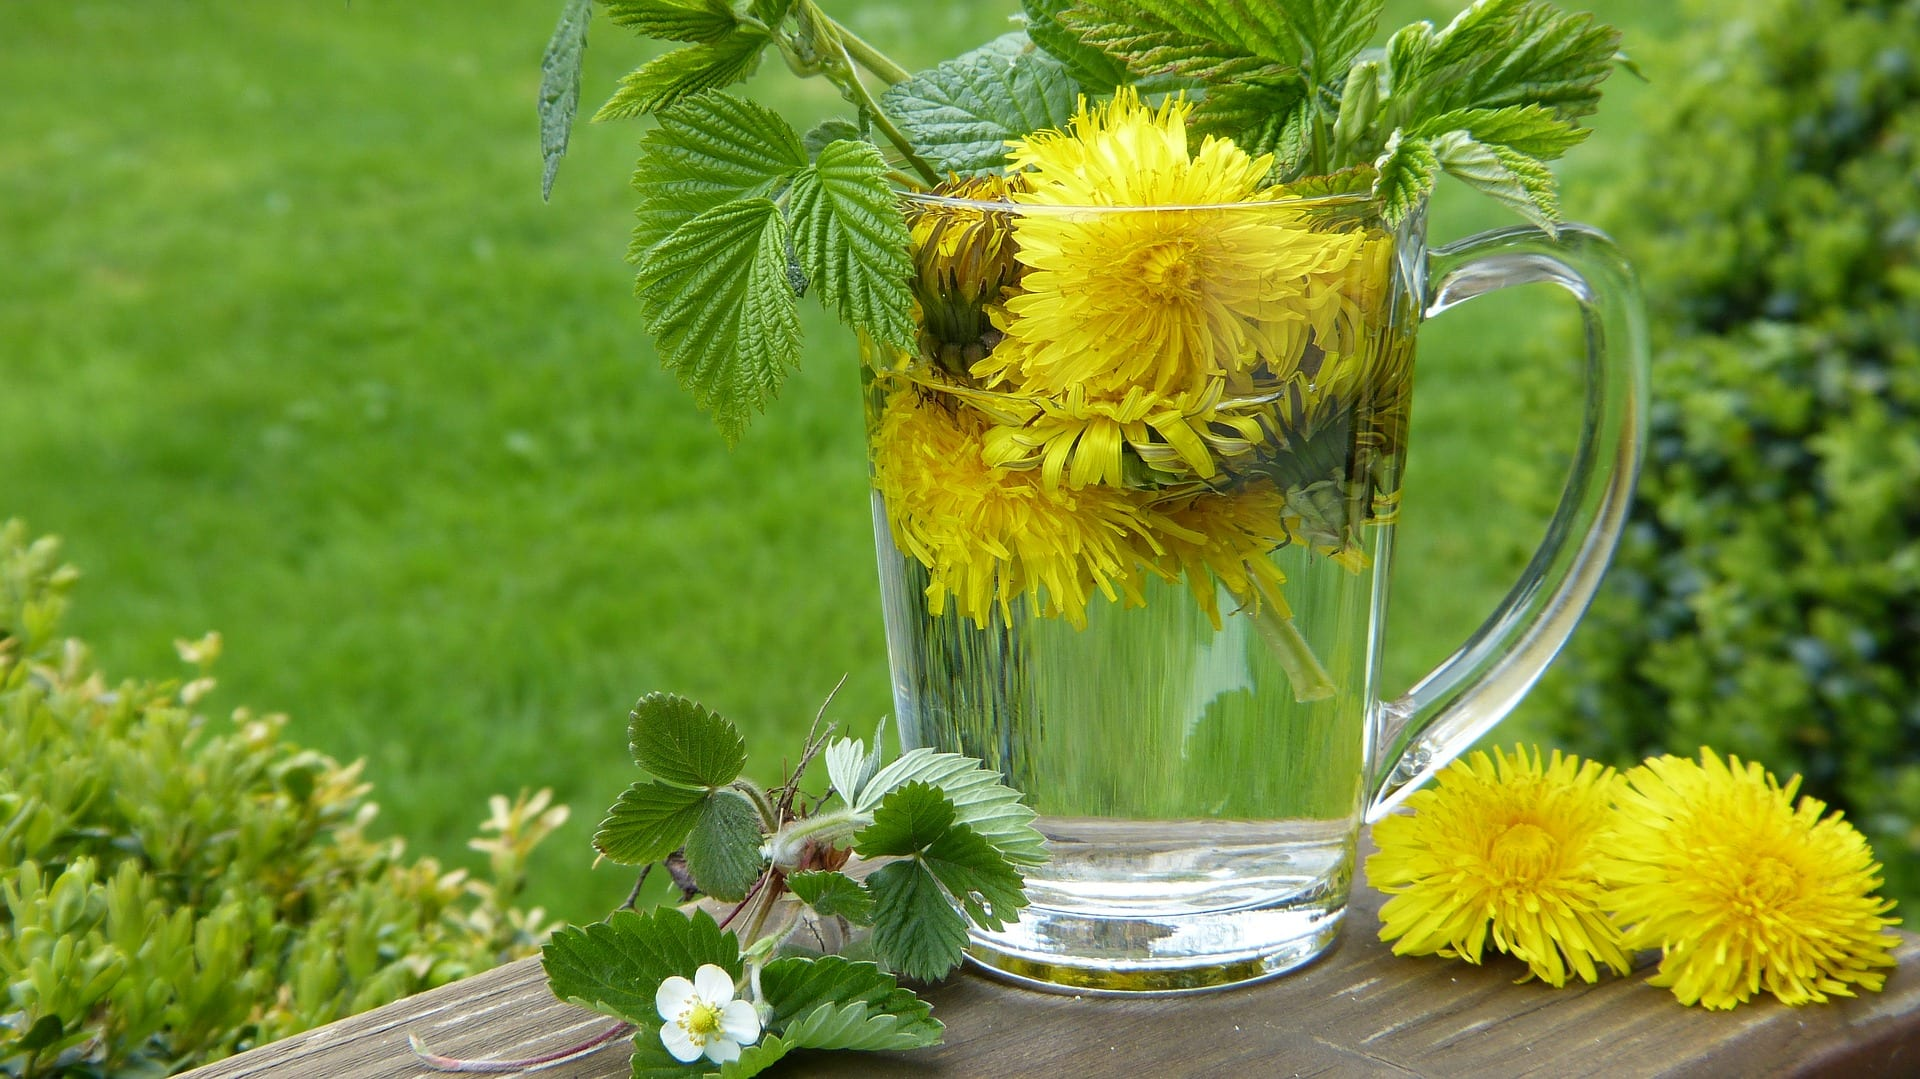 Is dandelion tea safe to drink